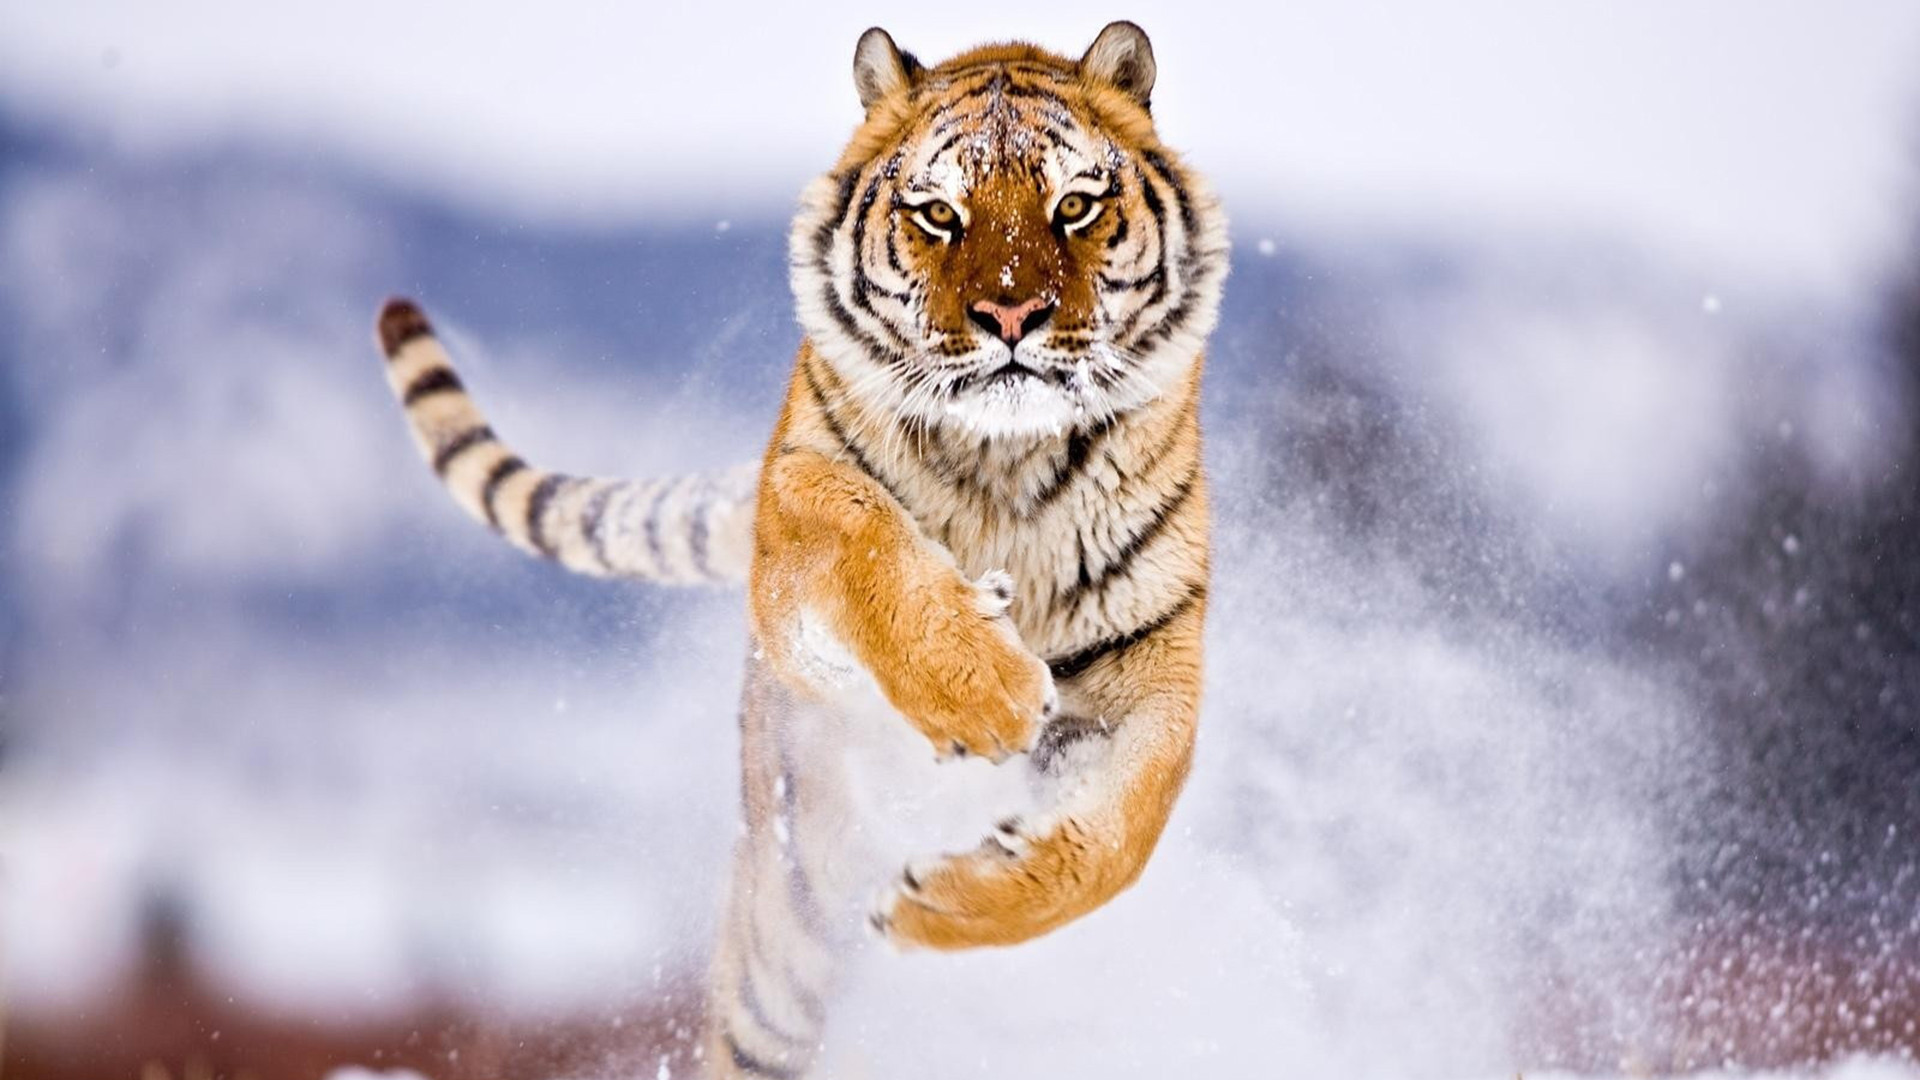 Res: 1920x1080,  Animal Full HD Wallpapers (36 Wallpapers)